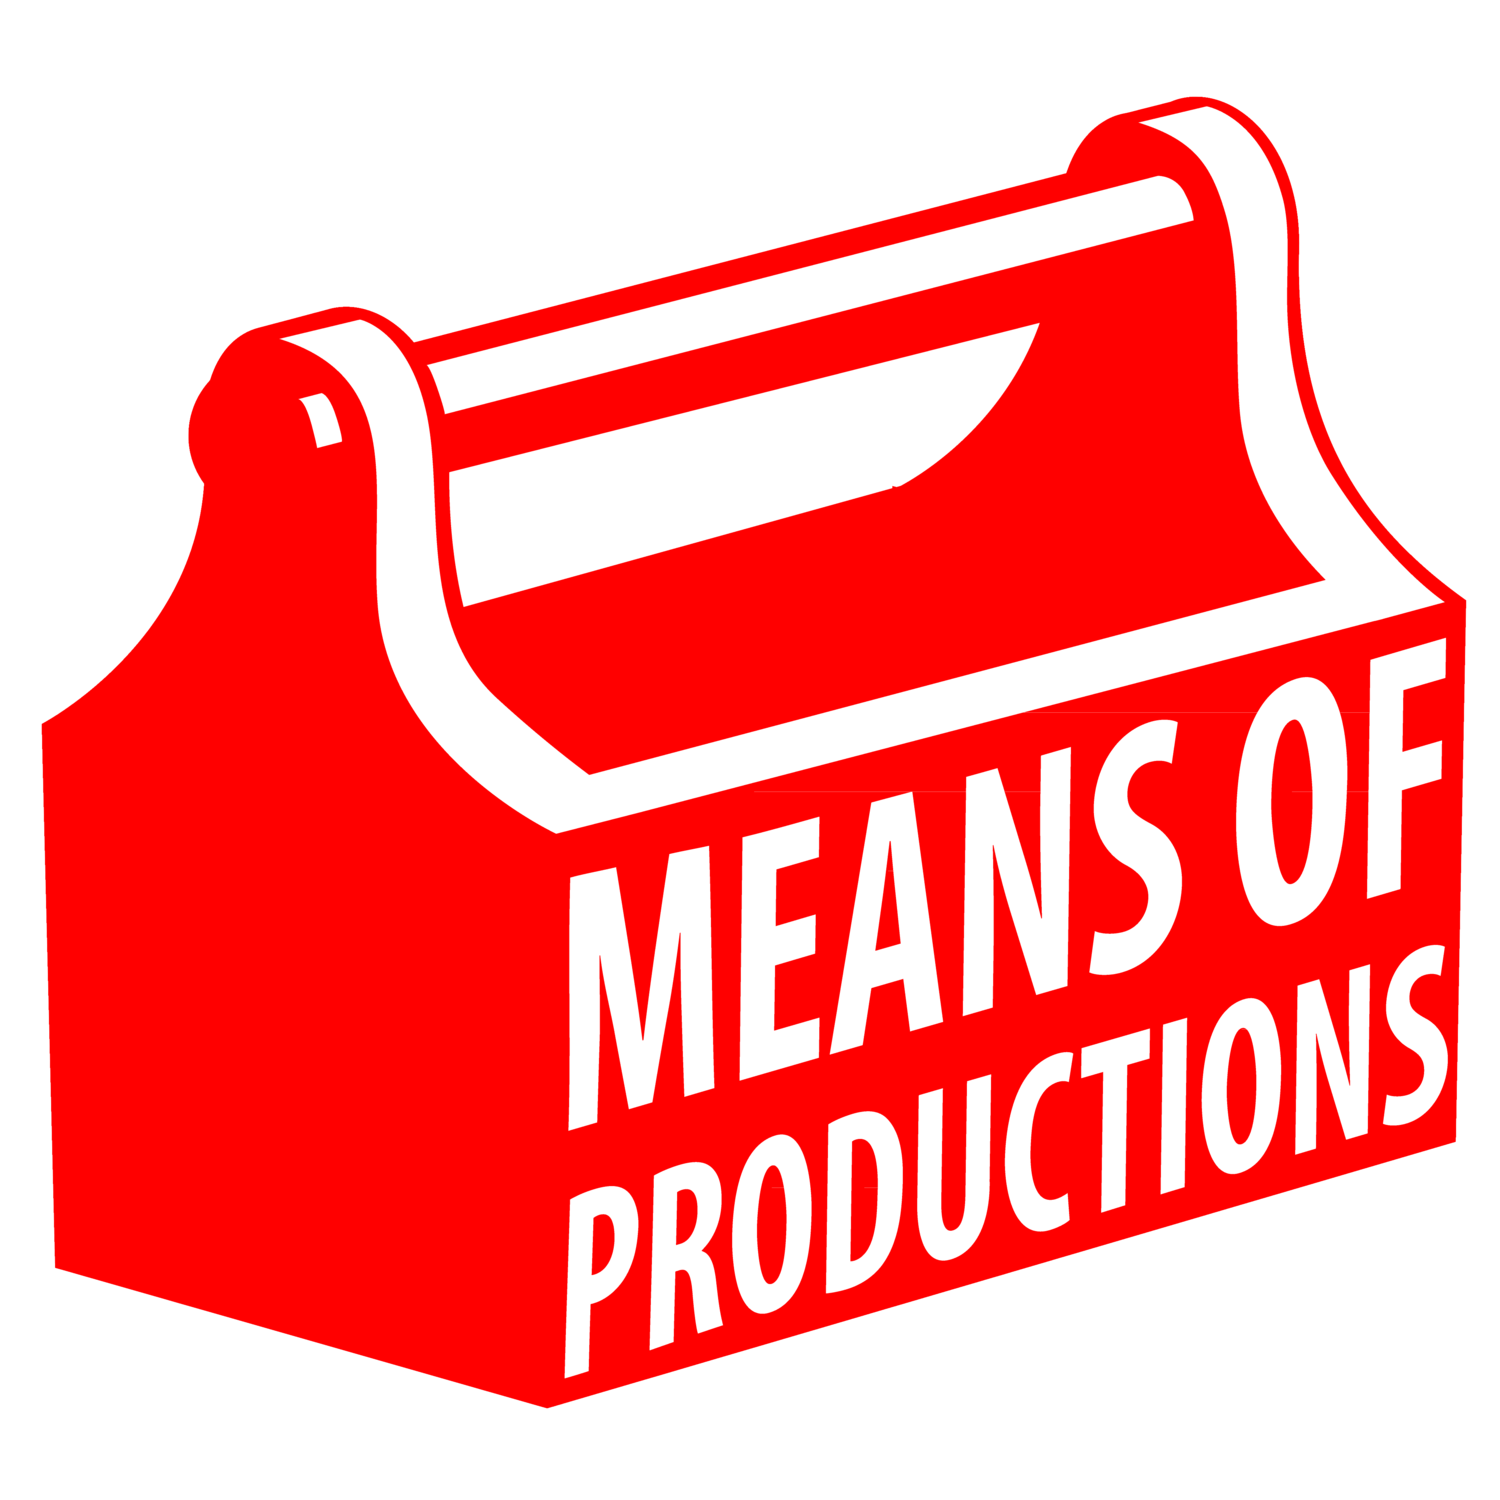 MEANS OF PRODUCTIONS